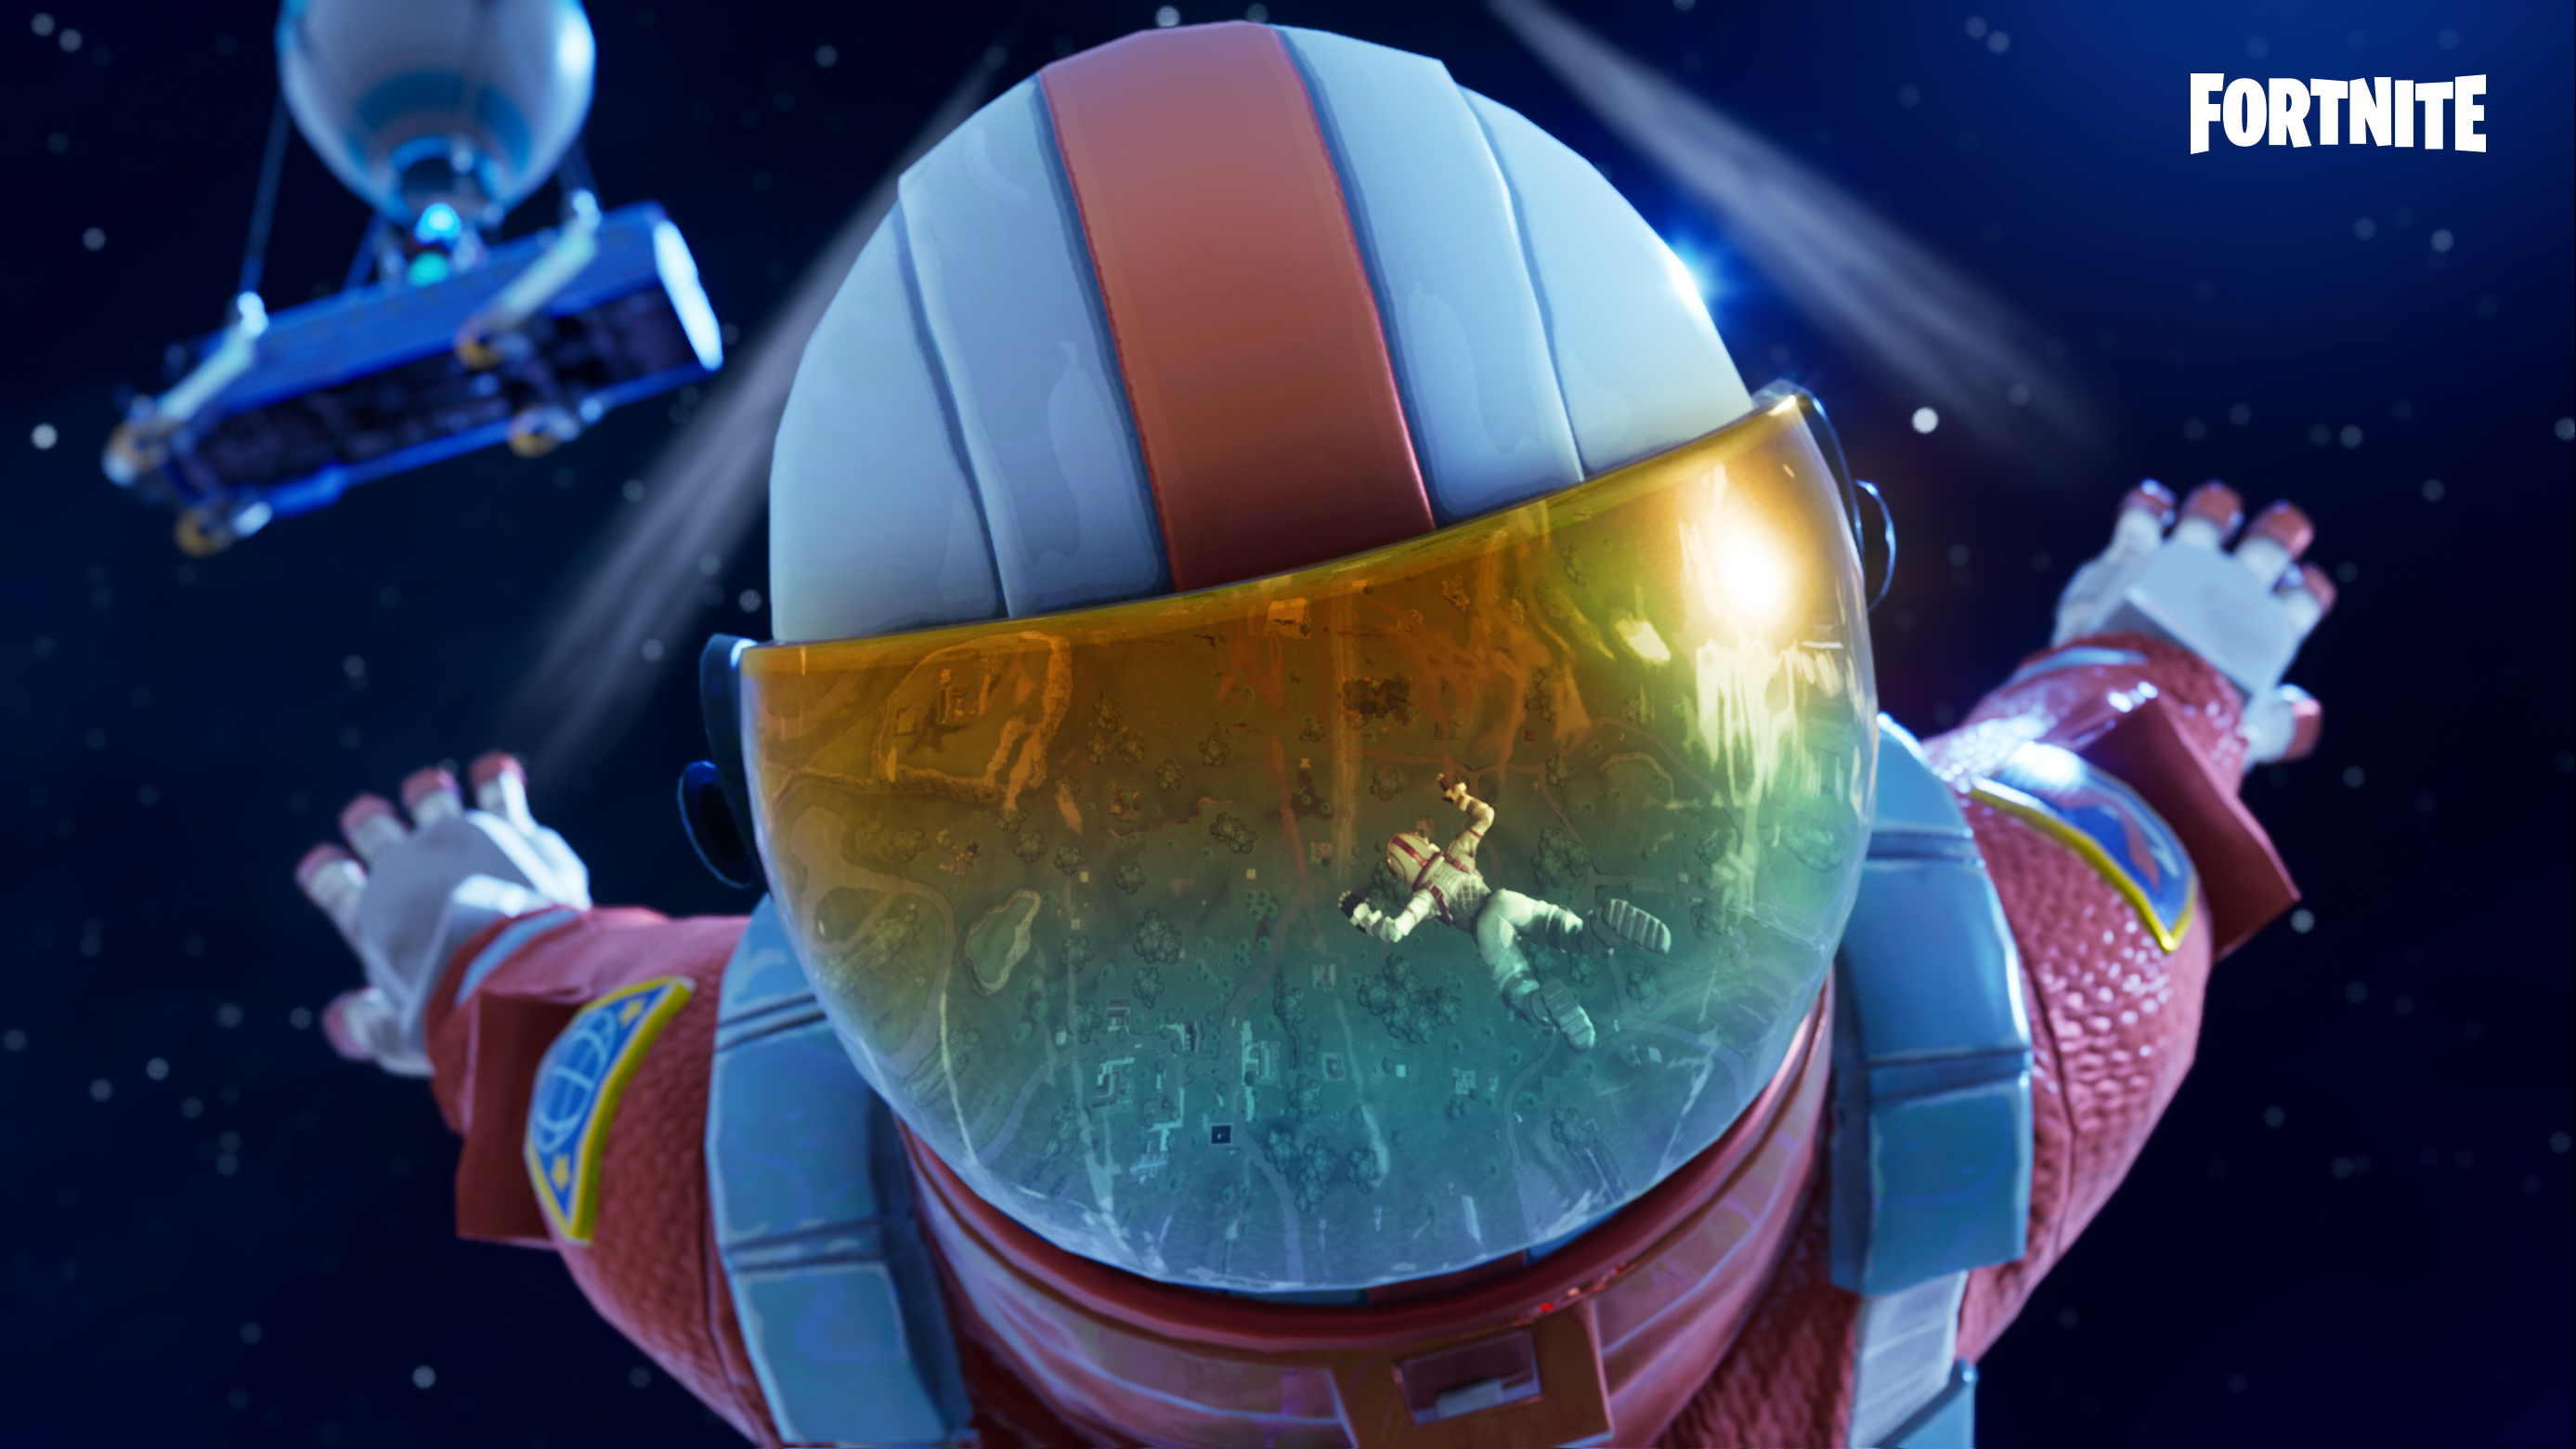 fortnite battle royale gets jetpack in future update player one